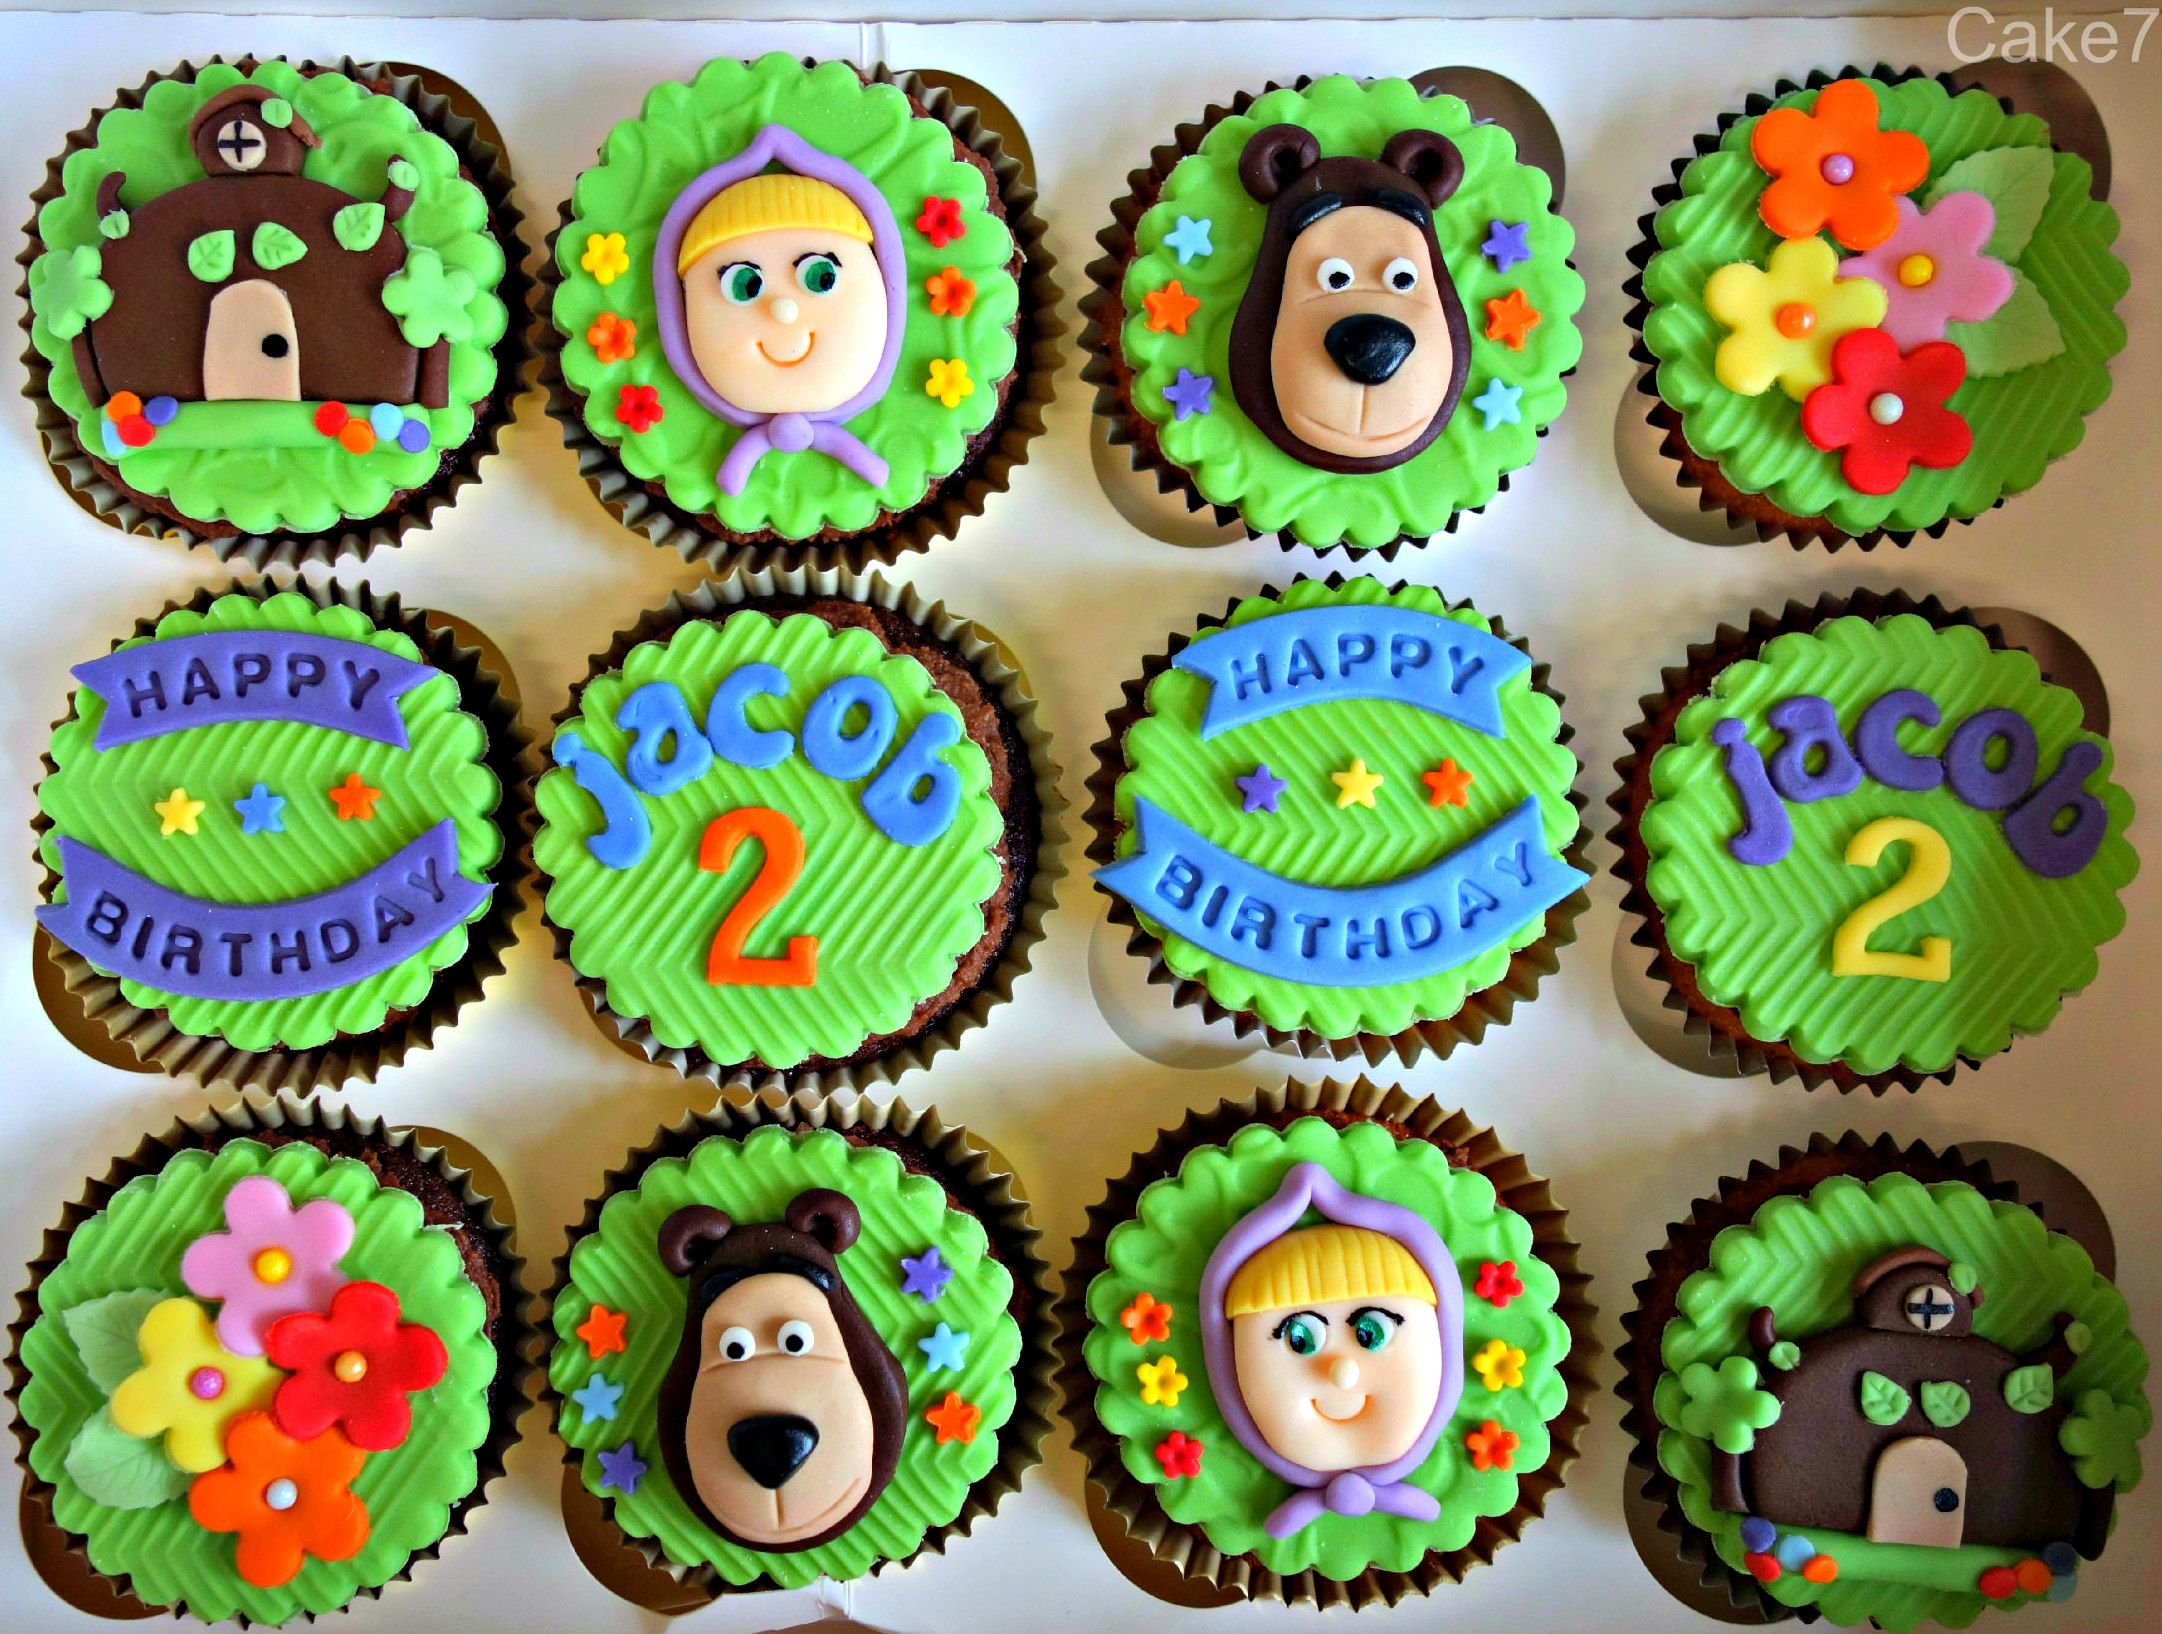 Masha & The Bear cupcakes. (Price from £12 for 12) www.cakeseven.wix... Facebook-Cake7. Twitter-Cake7 email: cake.seven@aol.co.uk phone: 07731 882 988